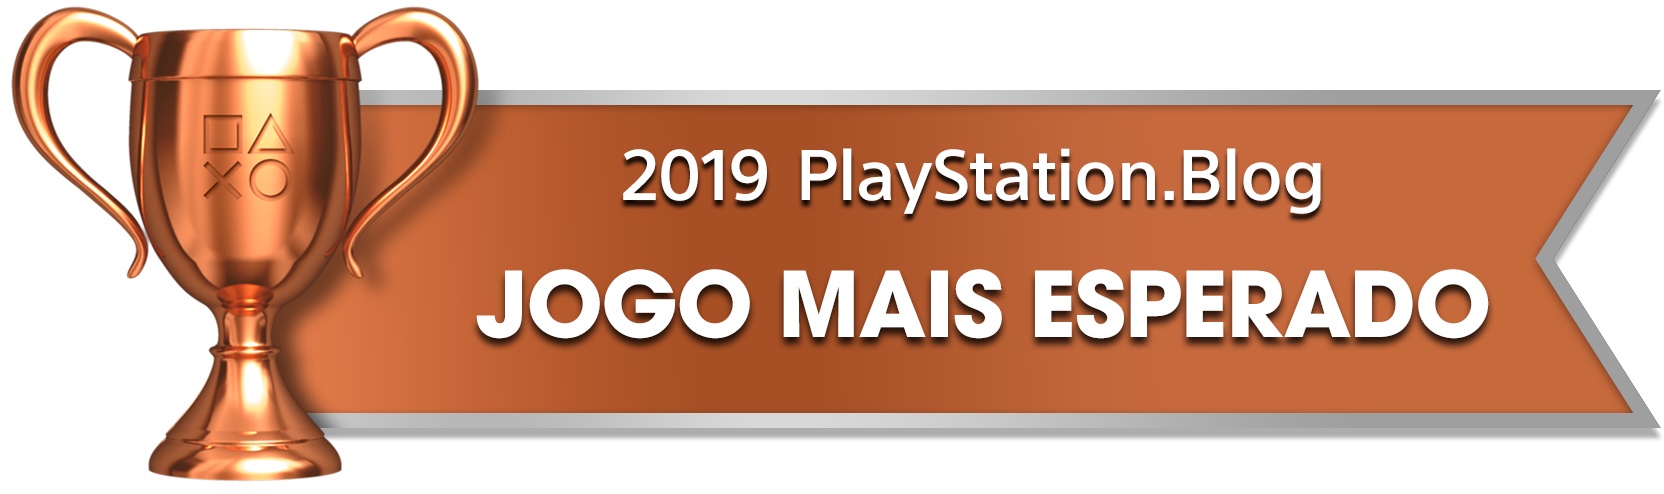 PS Blog Game of the Year 2019 - Most Anticipated - 4 - Bronze